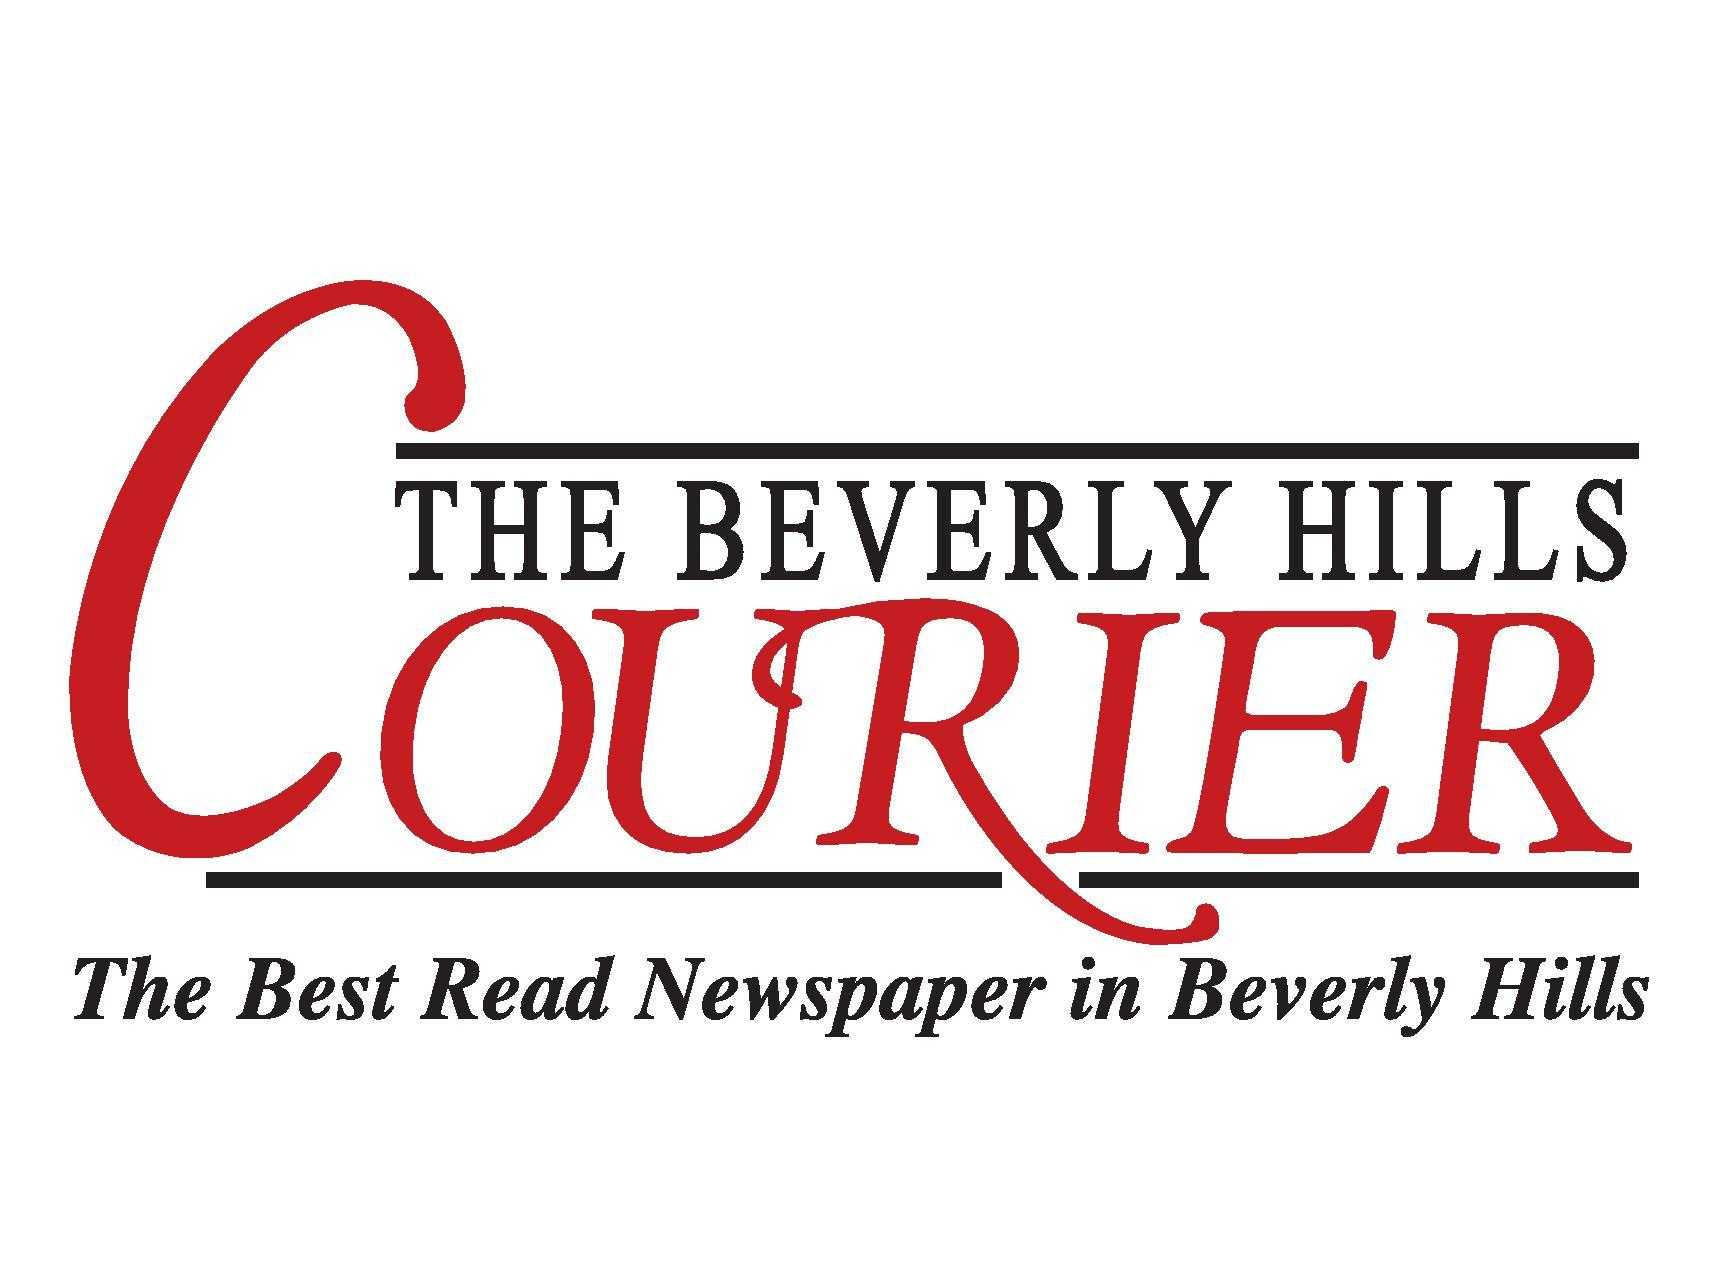 The Beverly Hills Courier